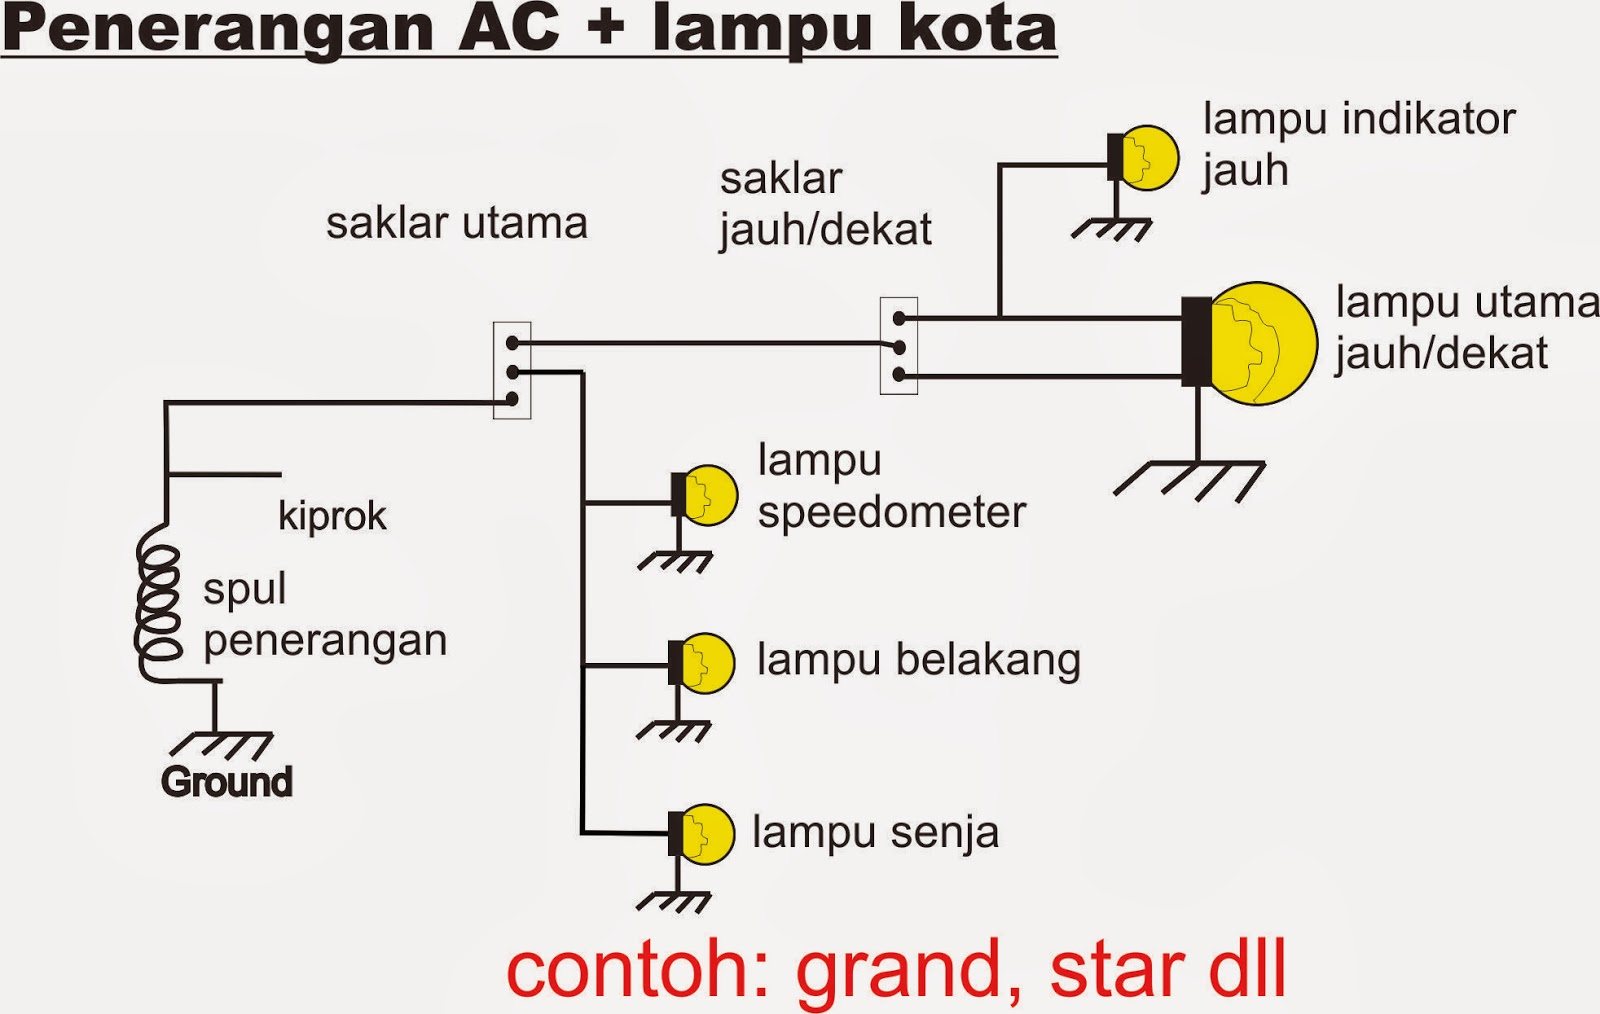 Wiring diagram sistem kelistrikan ac free download wiring diagram free download wiring diagram gambar wering diagram sistem penerangan sepeda motor honda terbaik of wiring cheapraybanclubmaster Image collections